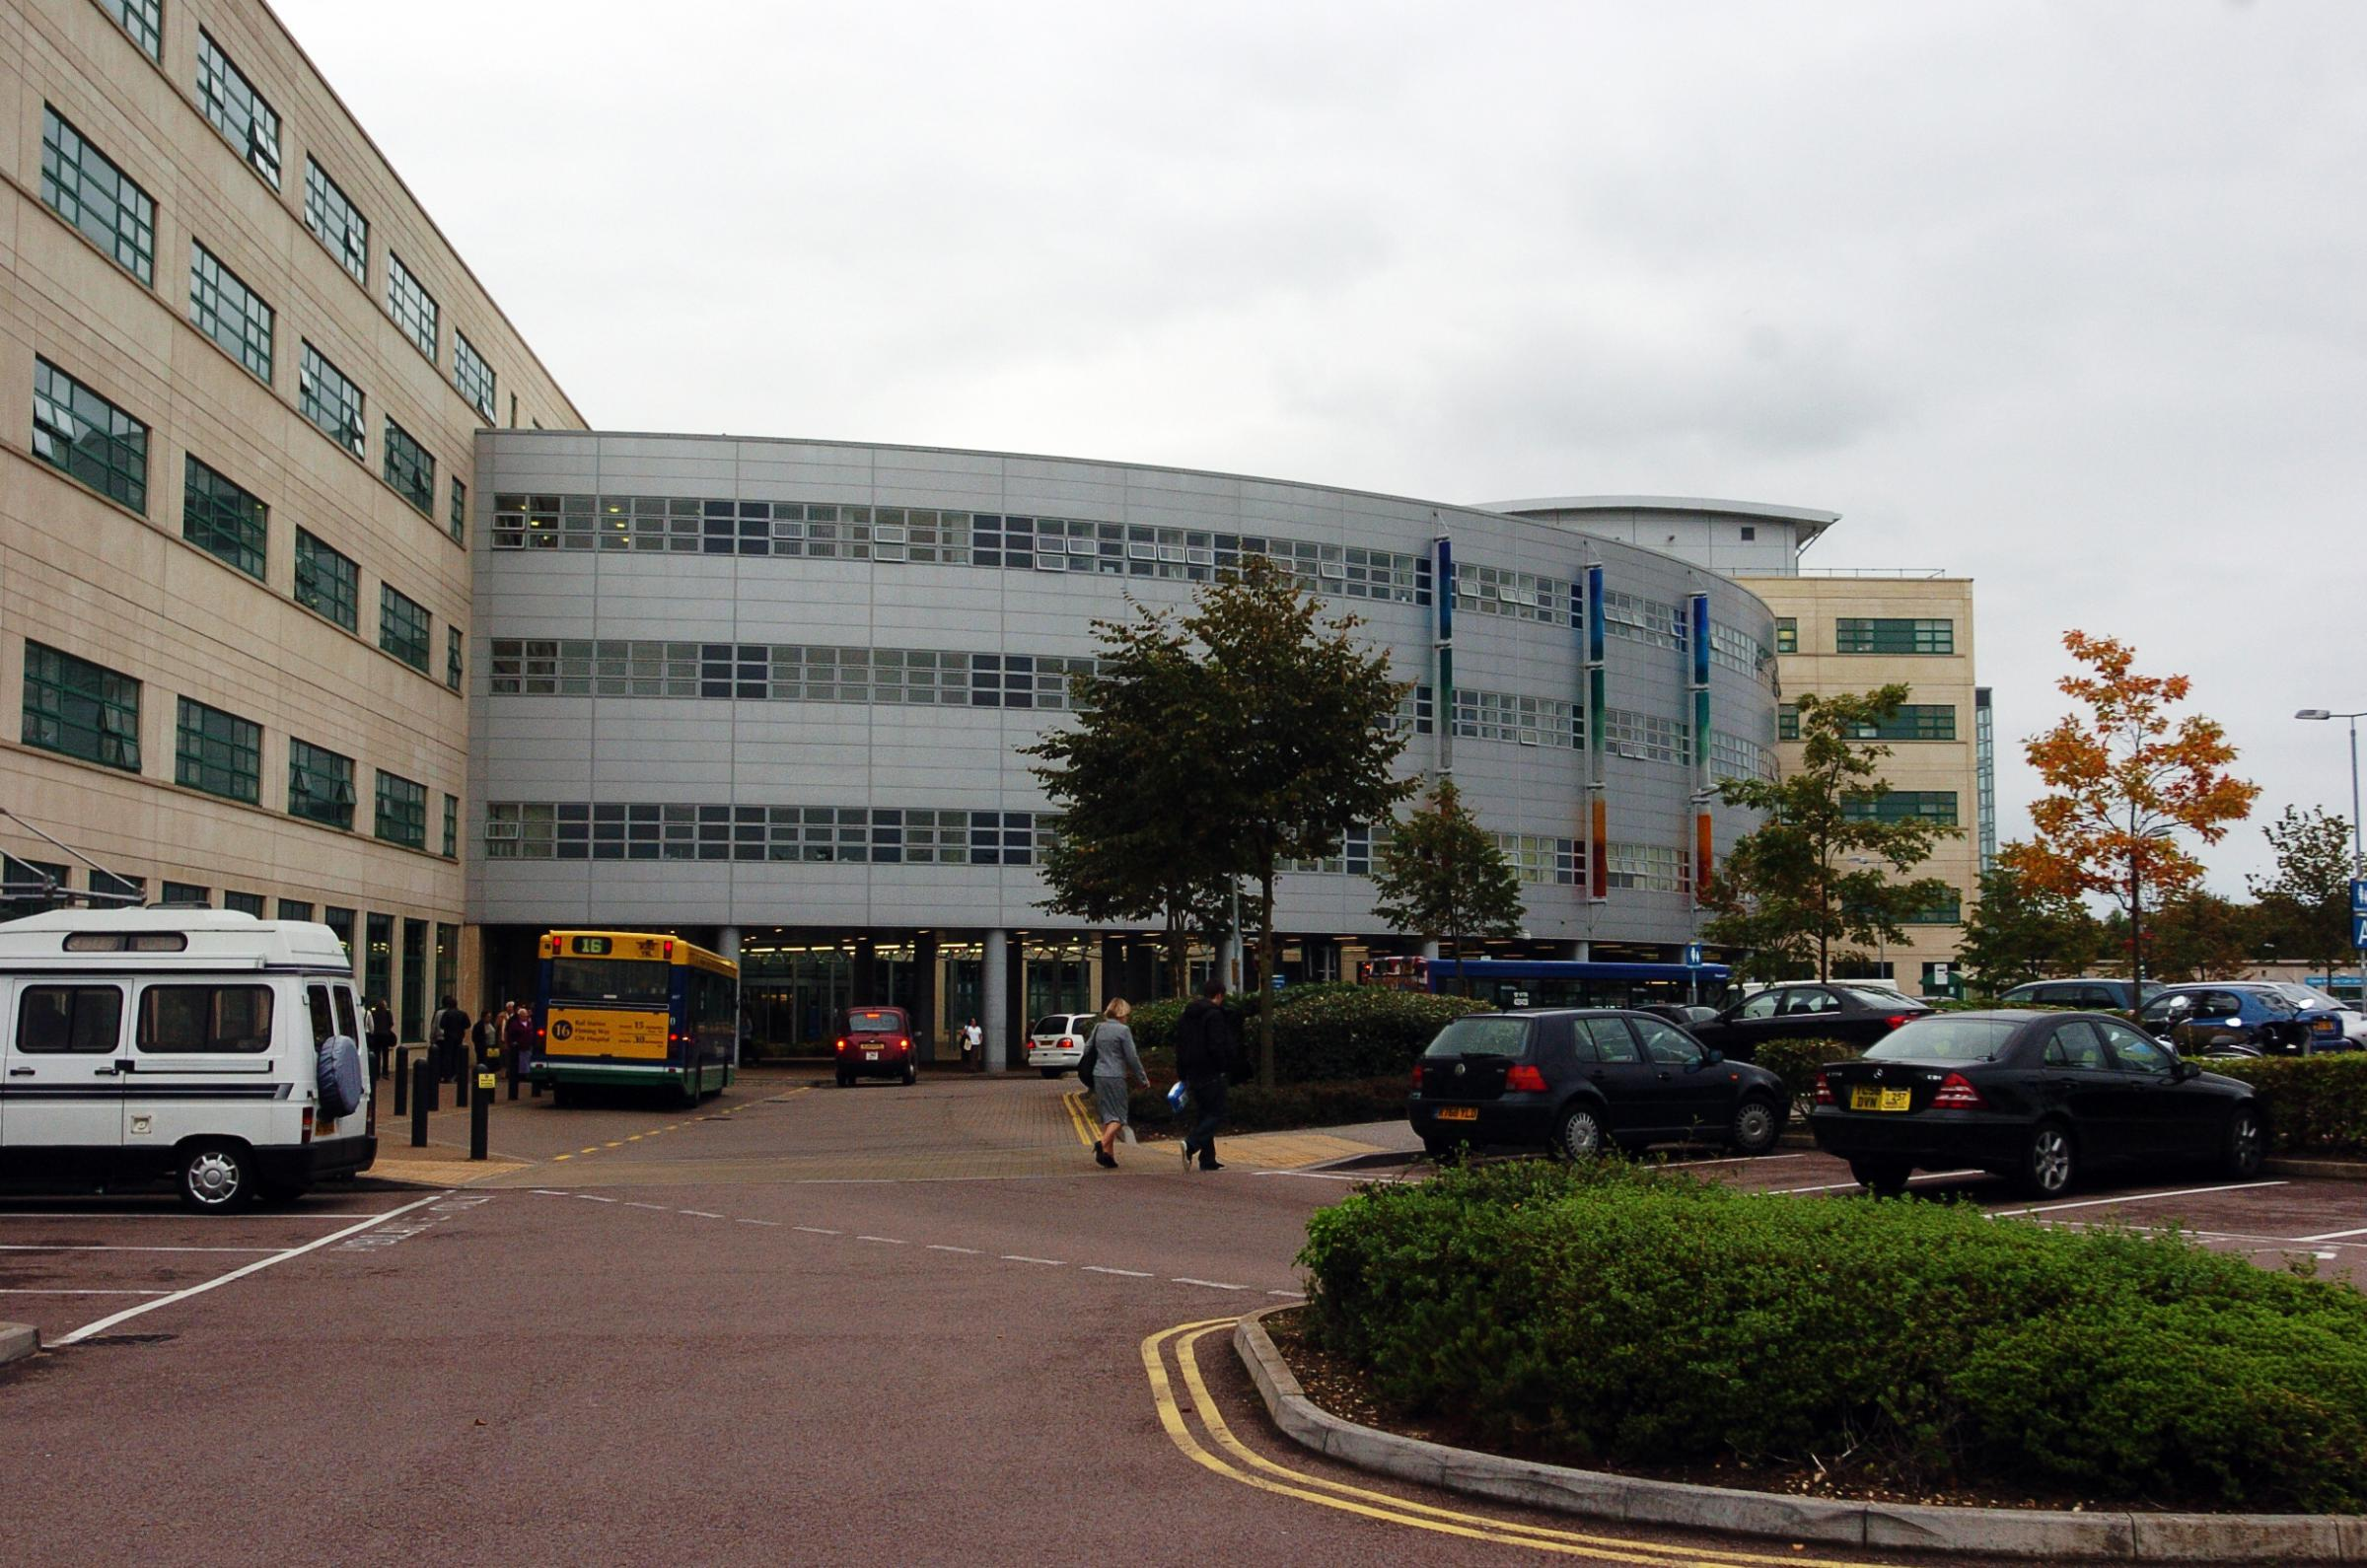 Patients wanted to take part in clinical trials